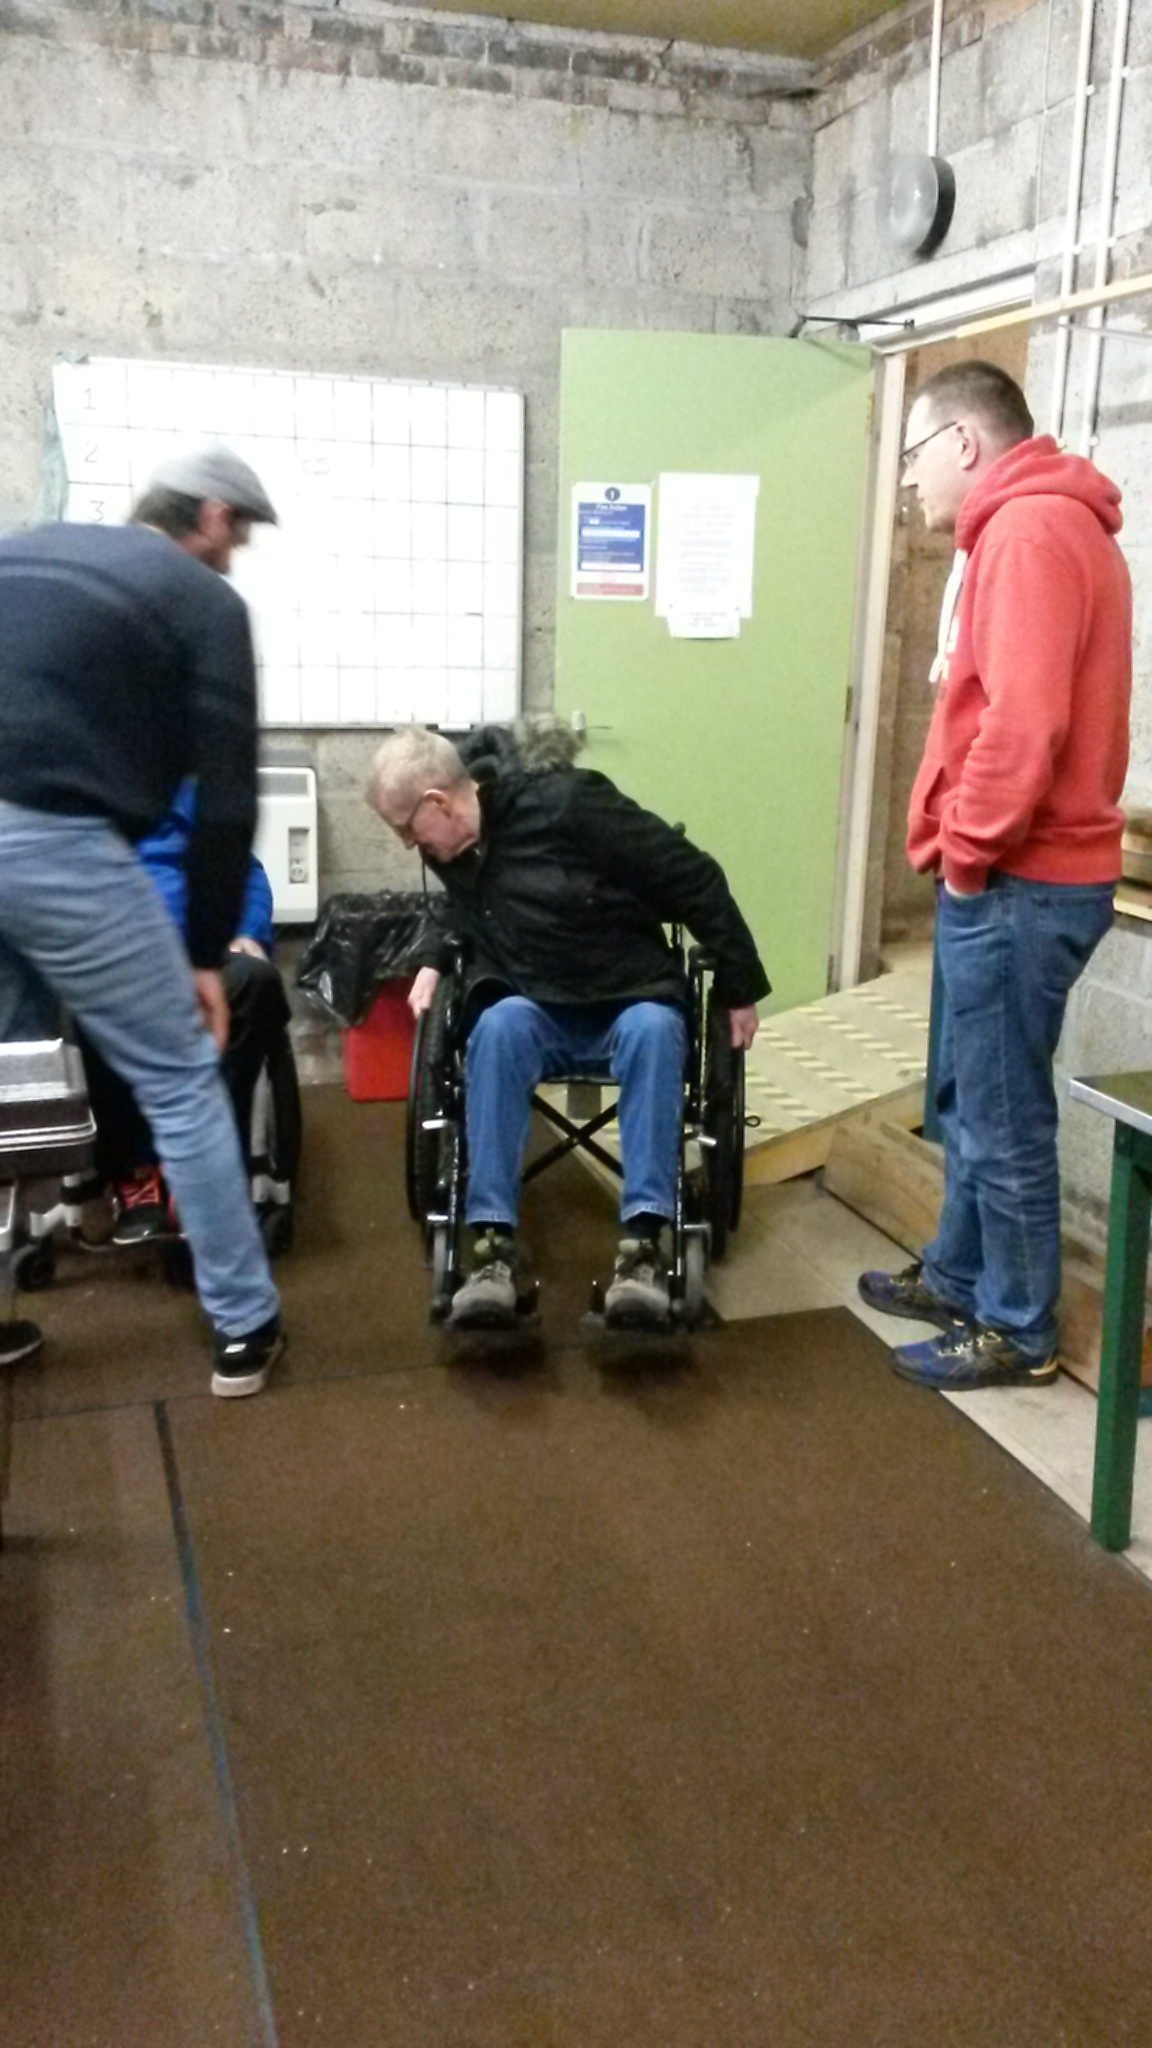 Participants getting involved in the wheelchair challenge